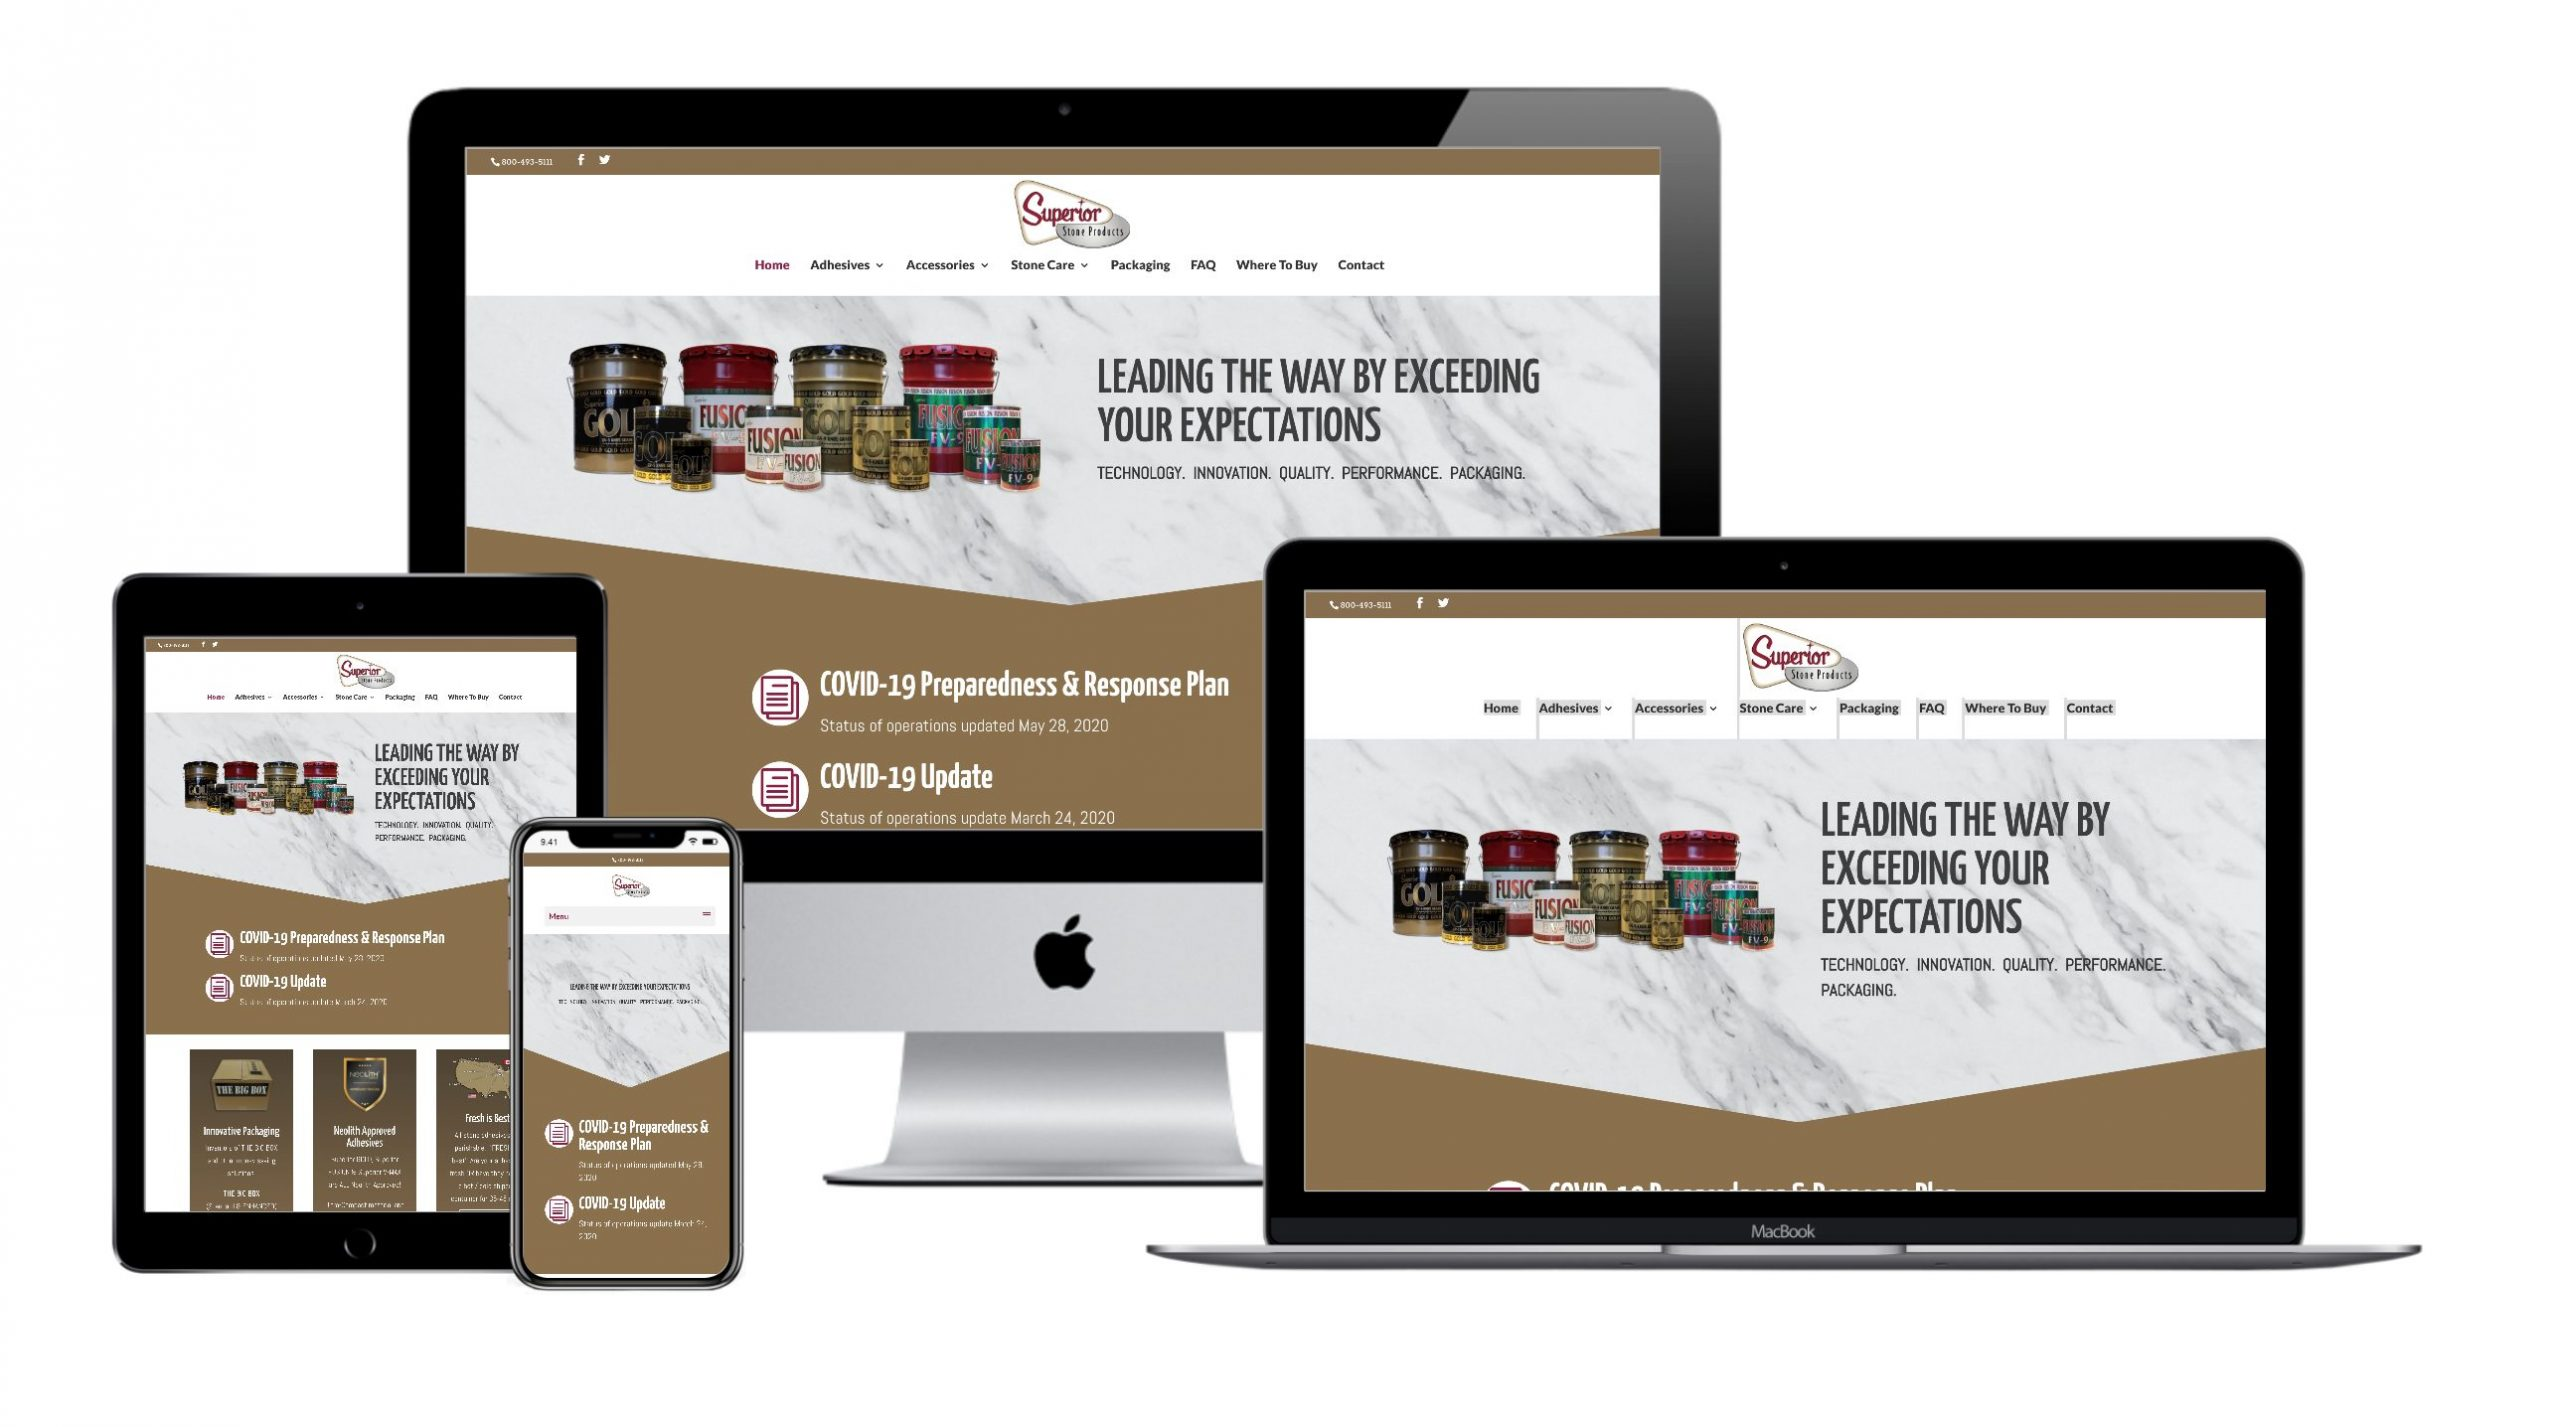 Superior Stone Products Website Design by VanDenBerg Web + Creative